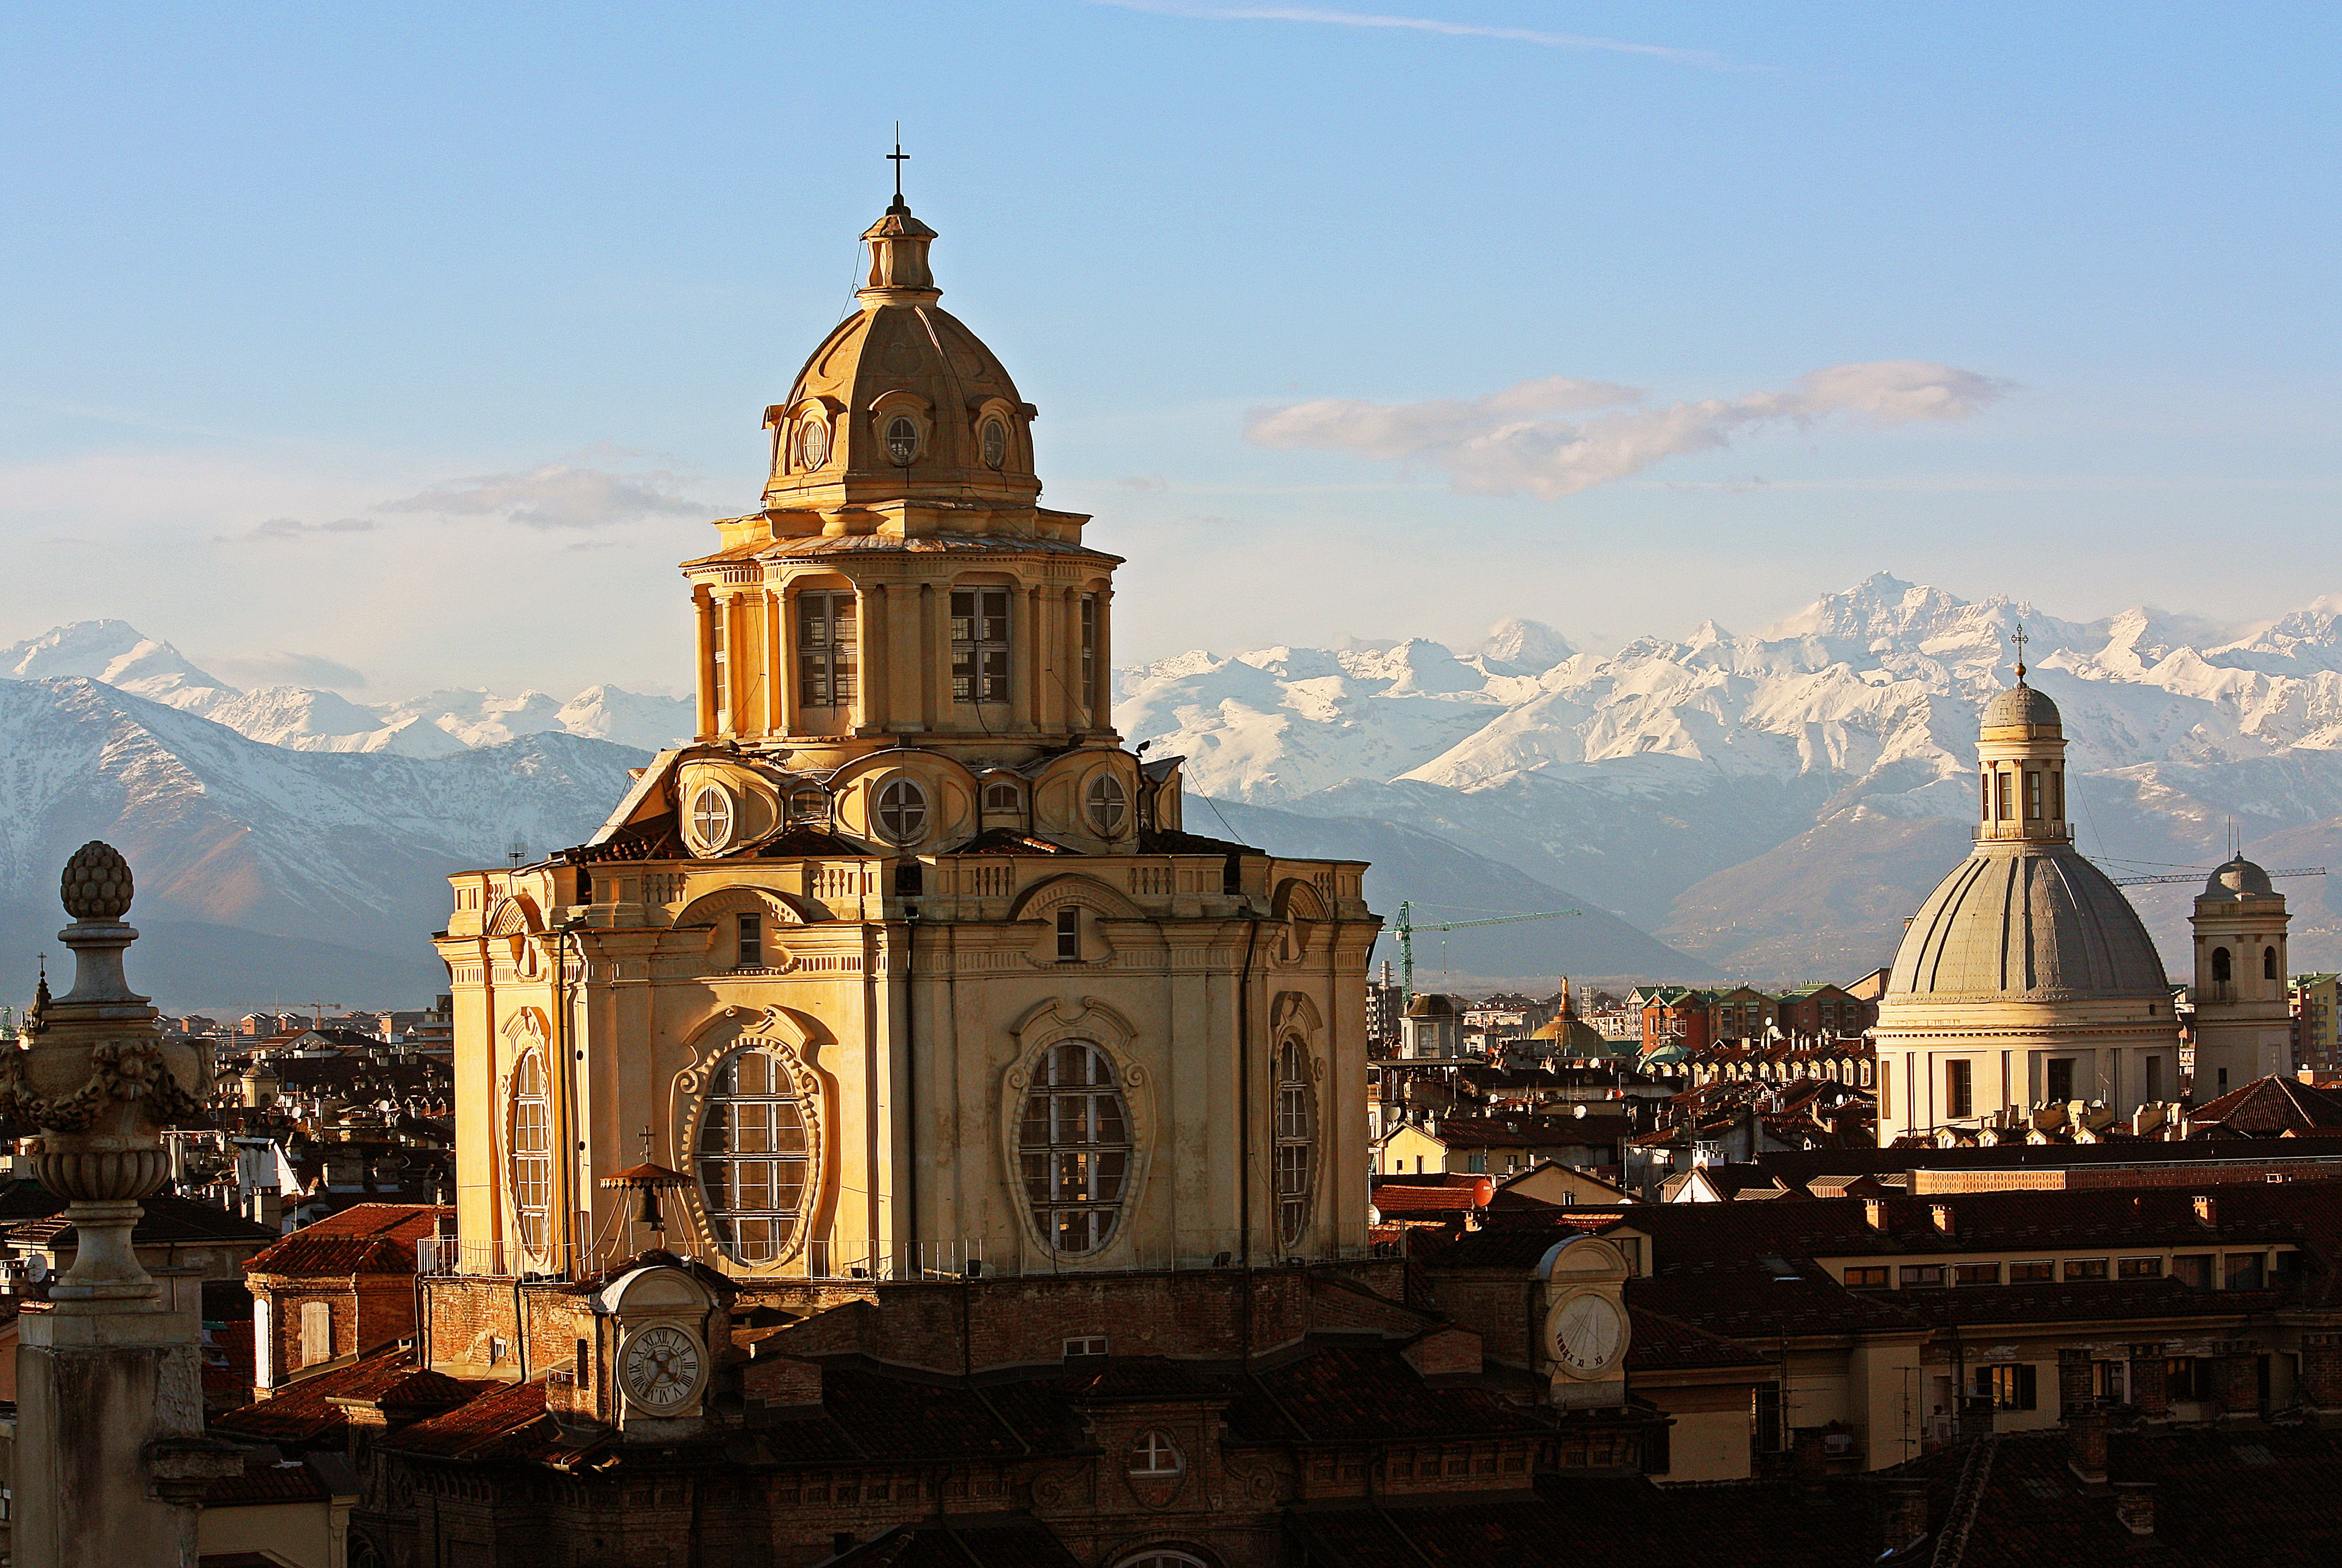 Roofs of Turin, Italy, with mountains in background